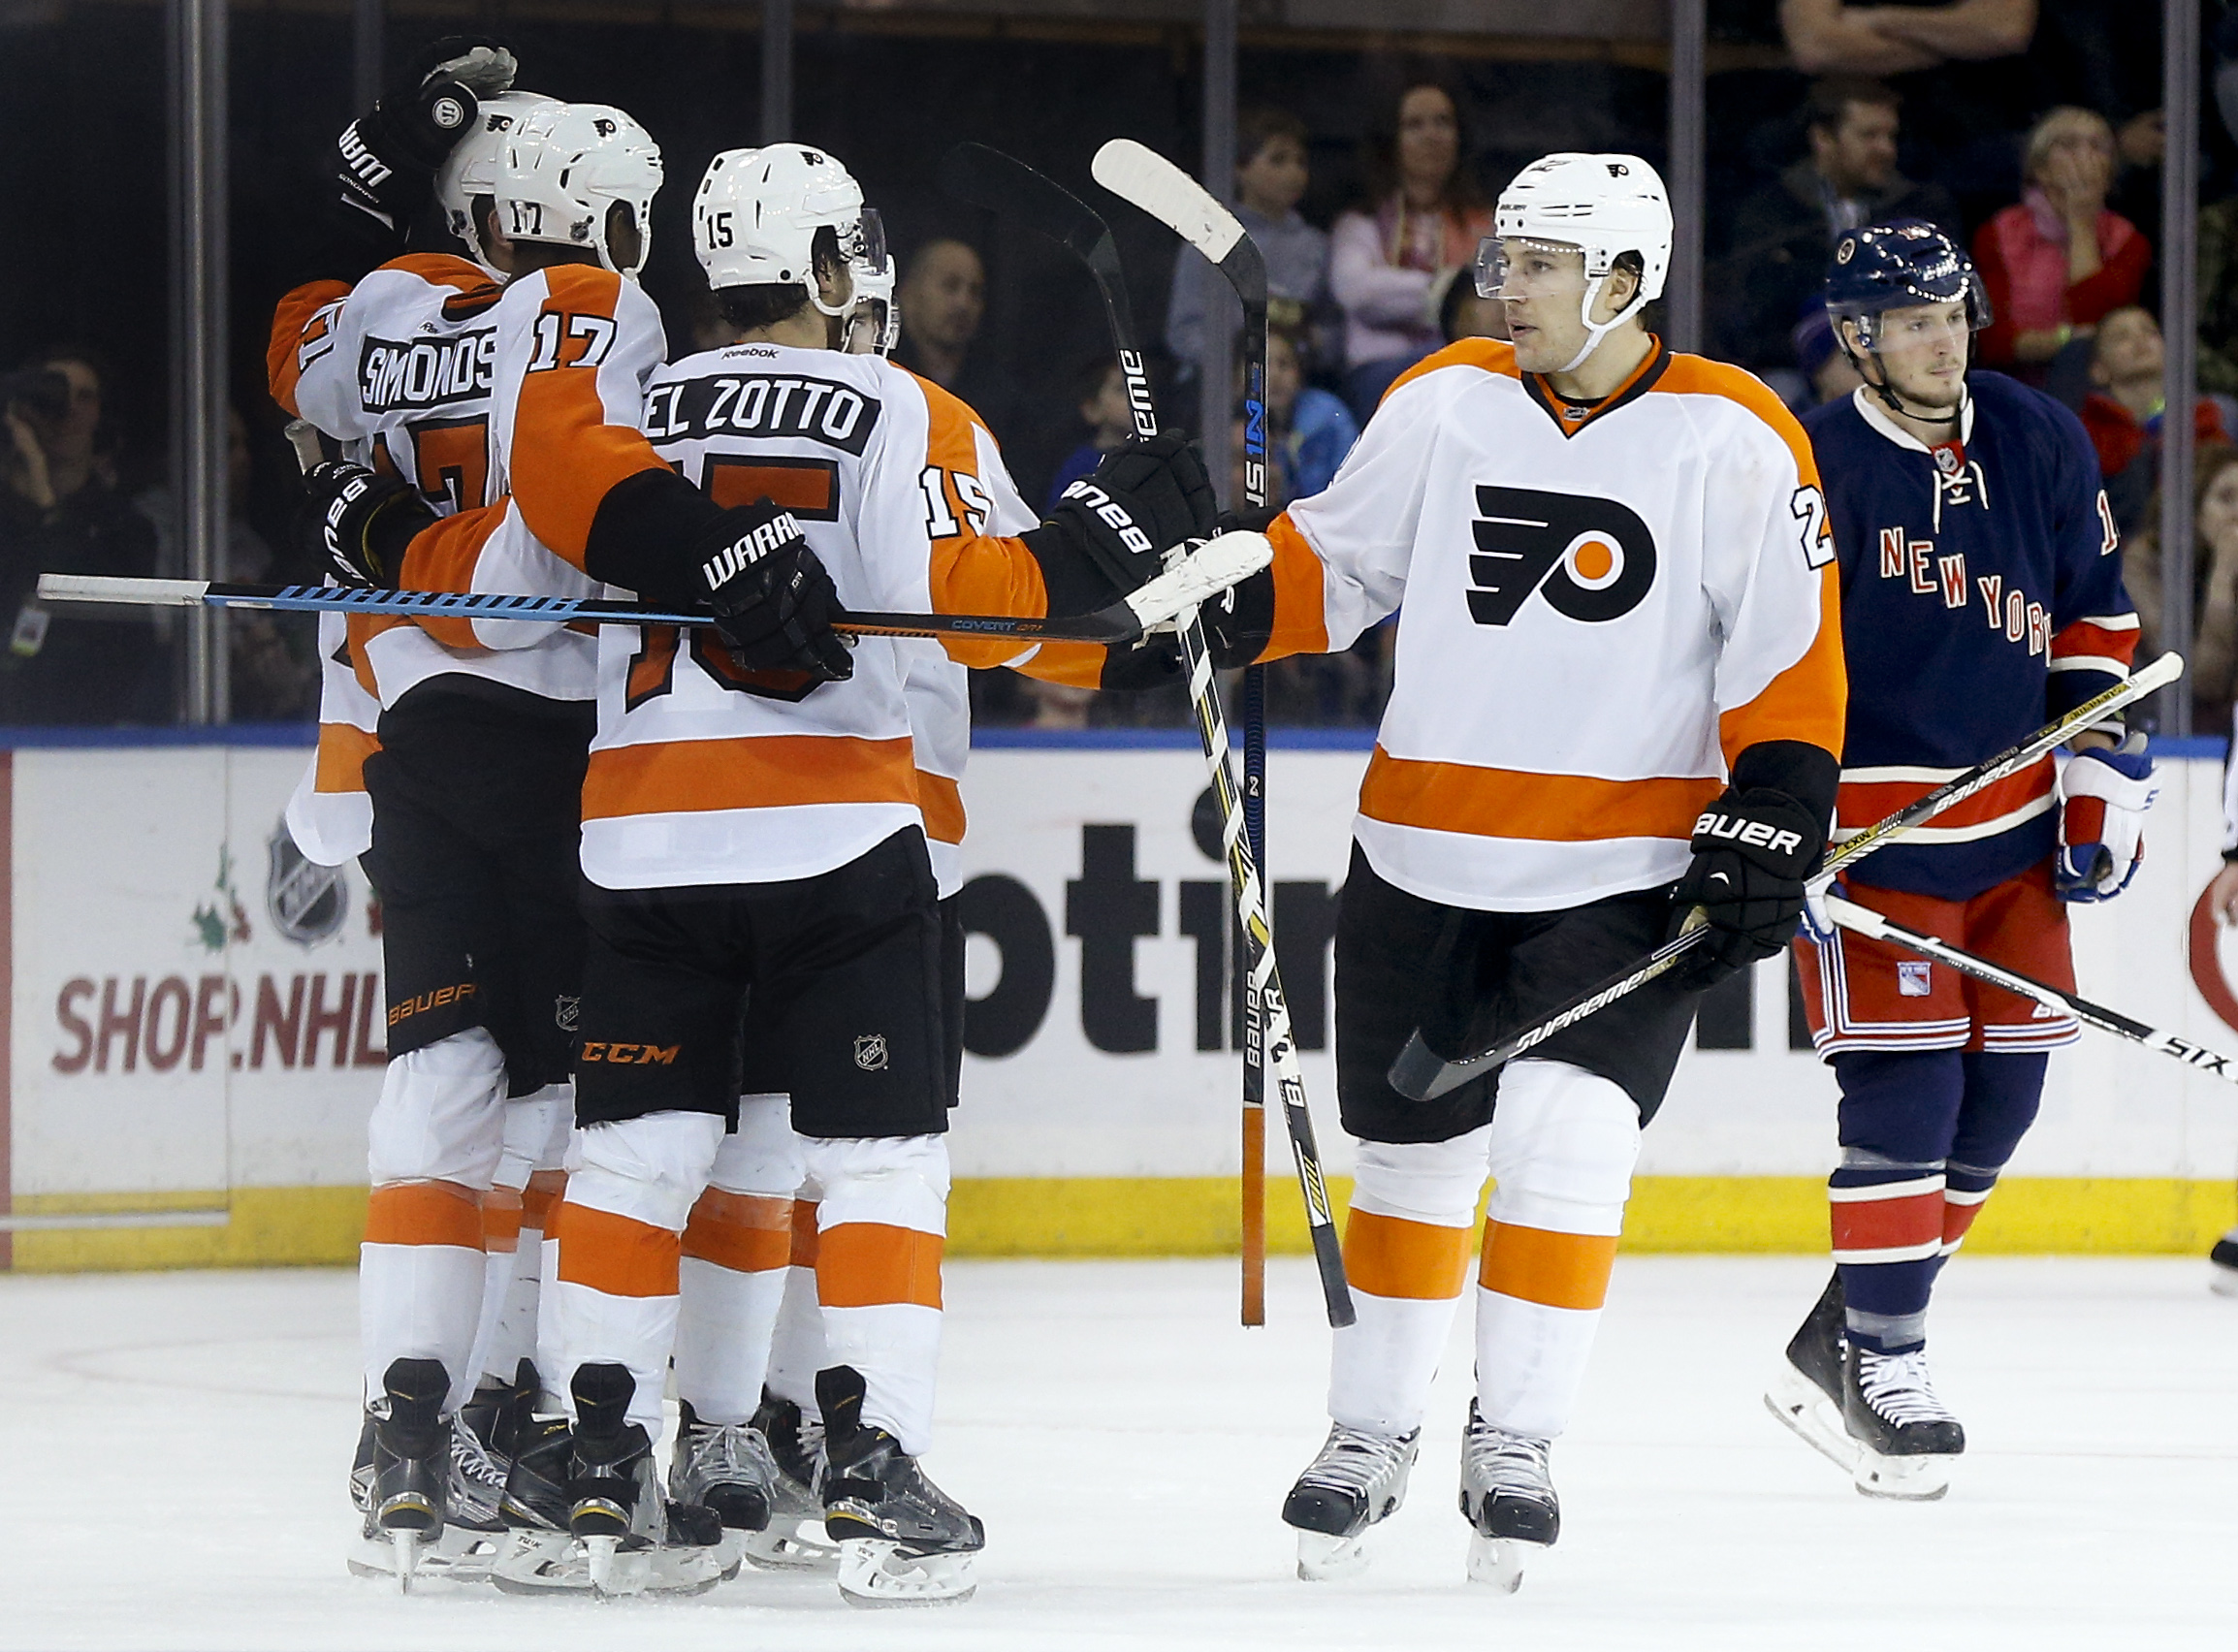 Philadelphia Flyers right wing Wayne Simmonds (17) celebrates with defenseman Michael Del Zotto (15) and defenseman Luke Schenn (22) after scoring a goal against the New York Rangers during the second period of an NHL hockey game, Saturday, Nov. 28, 2015,